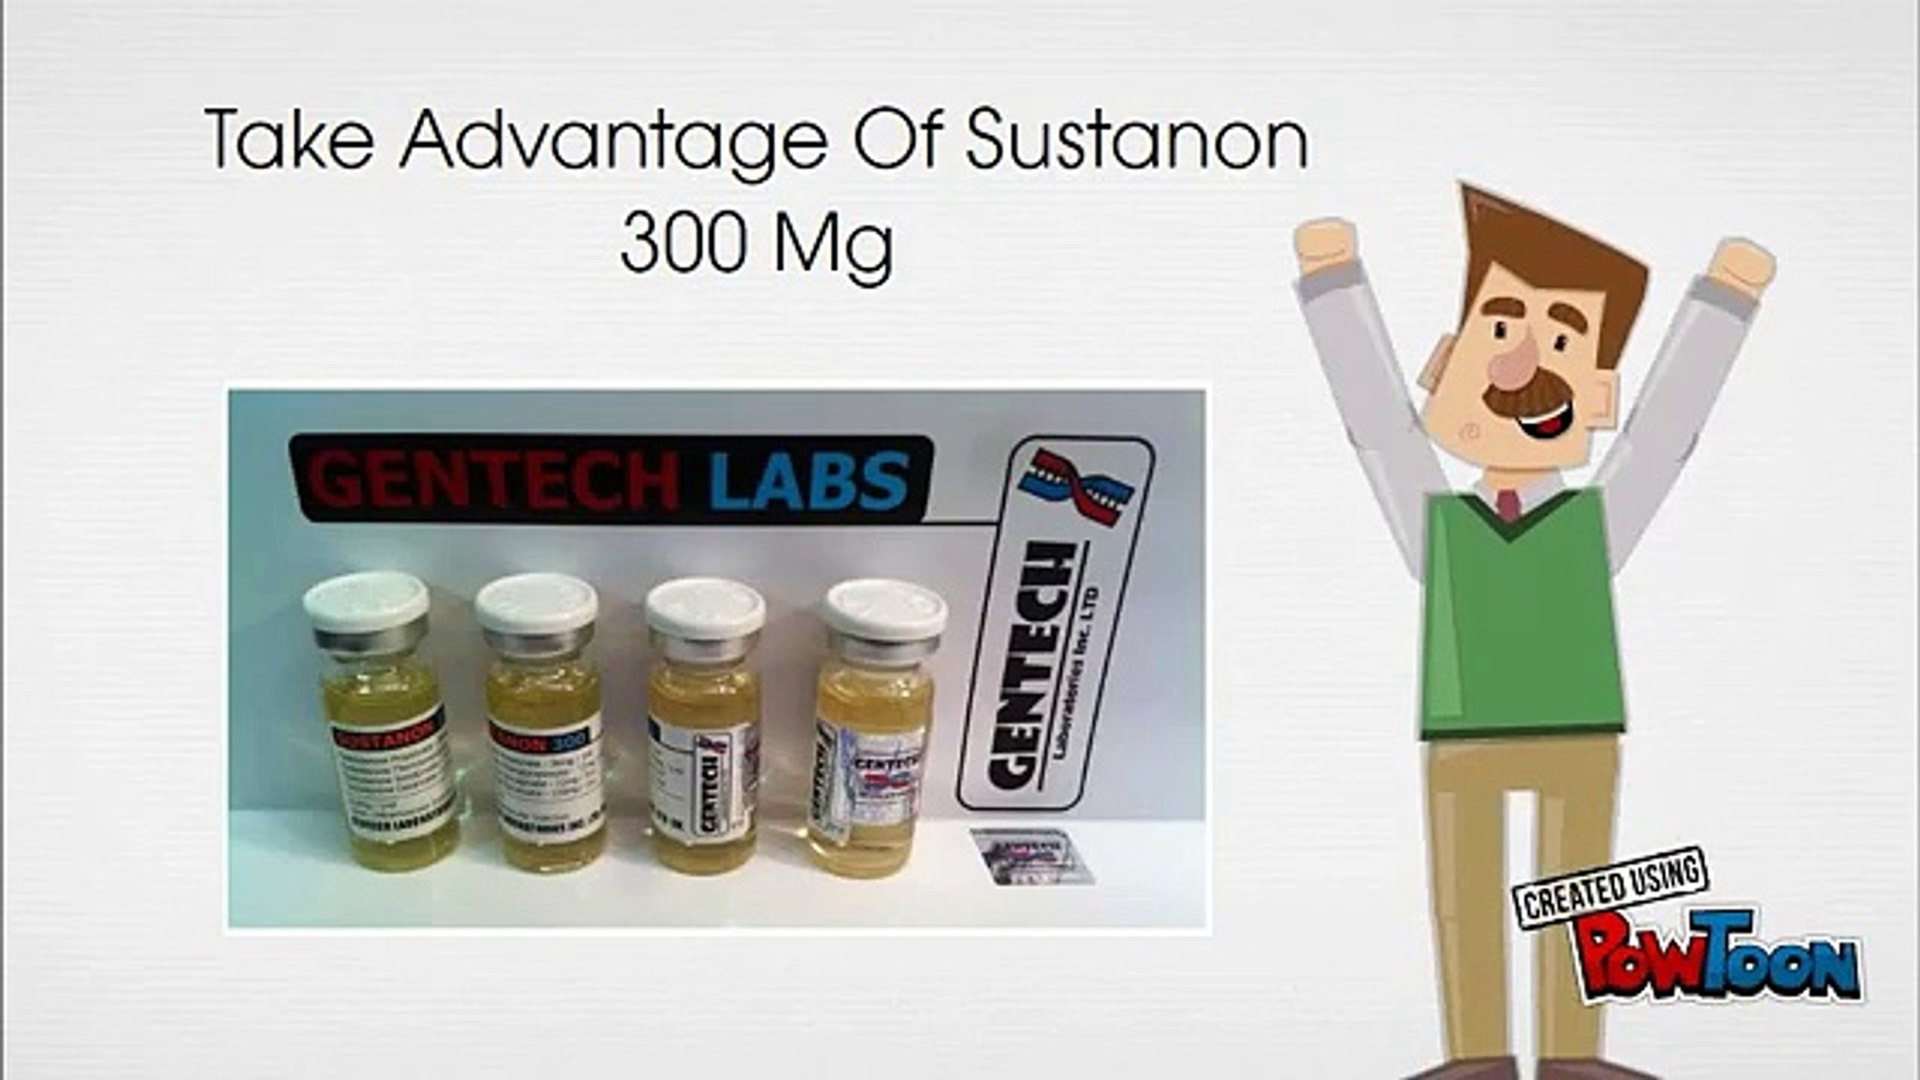 Take Advantage Of Sustanon 300 Mg - Read These 5 Tips